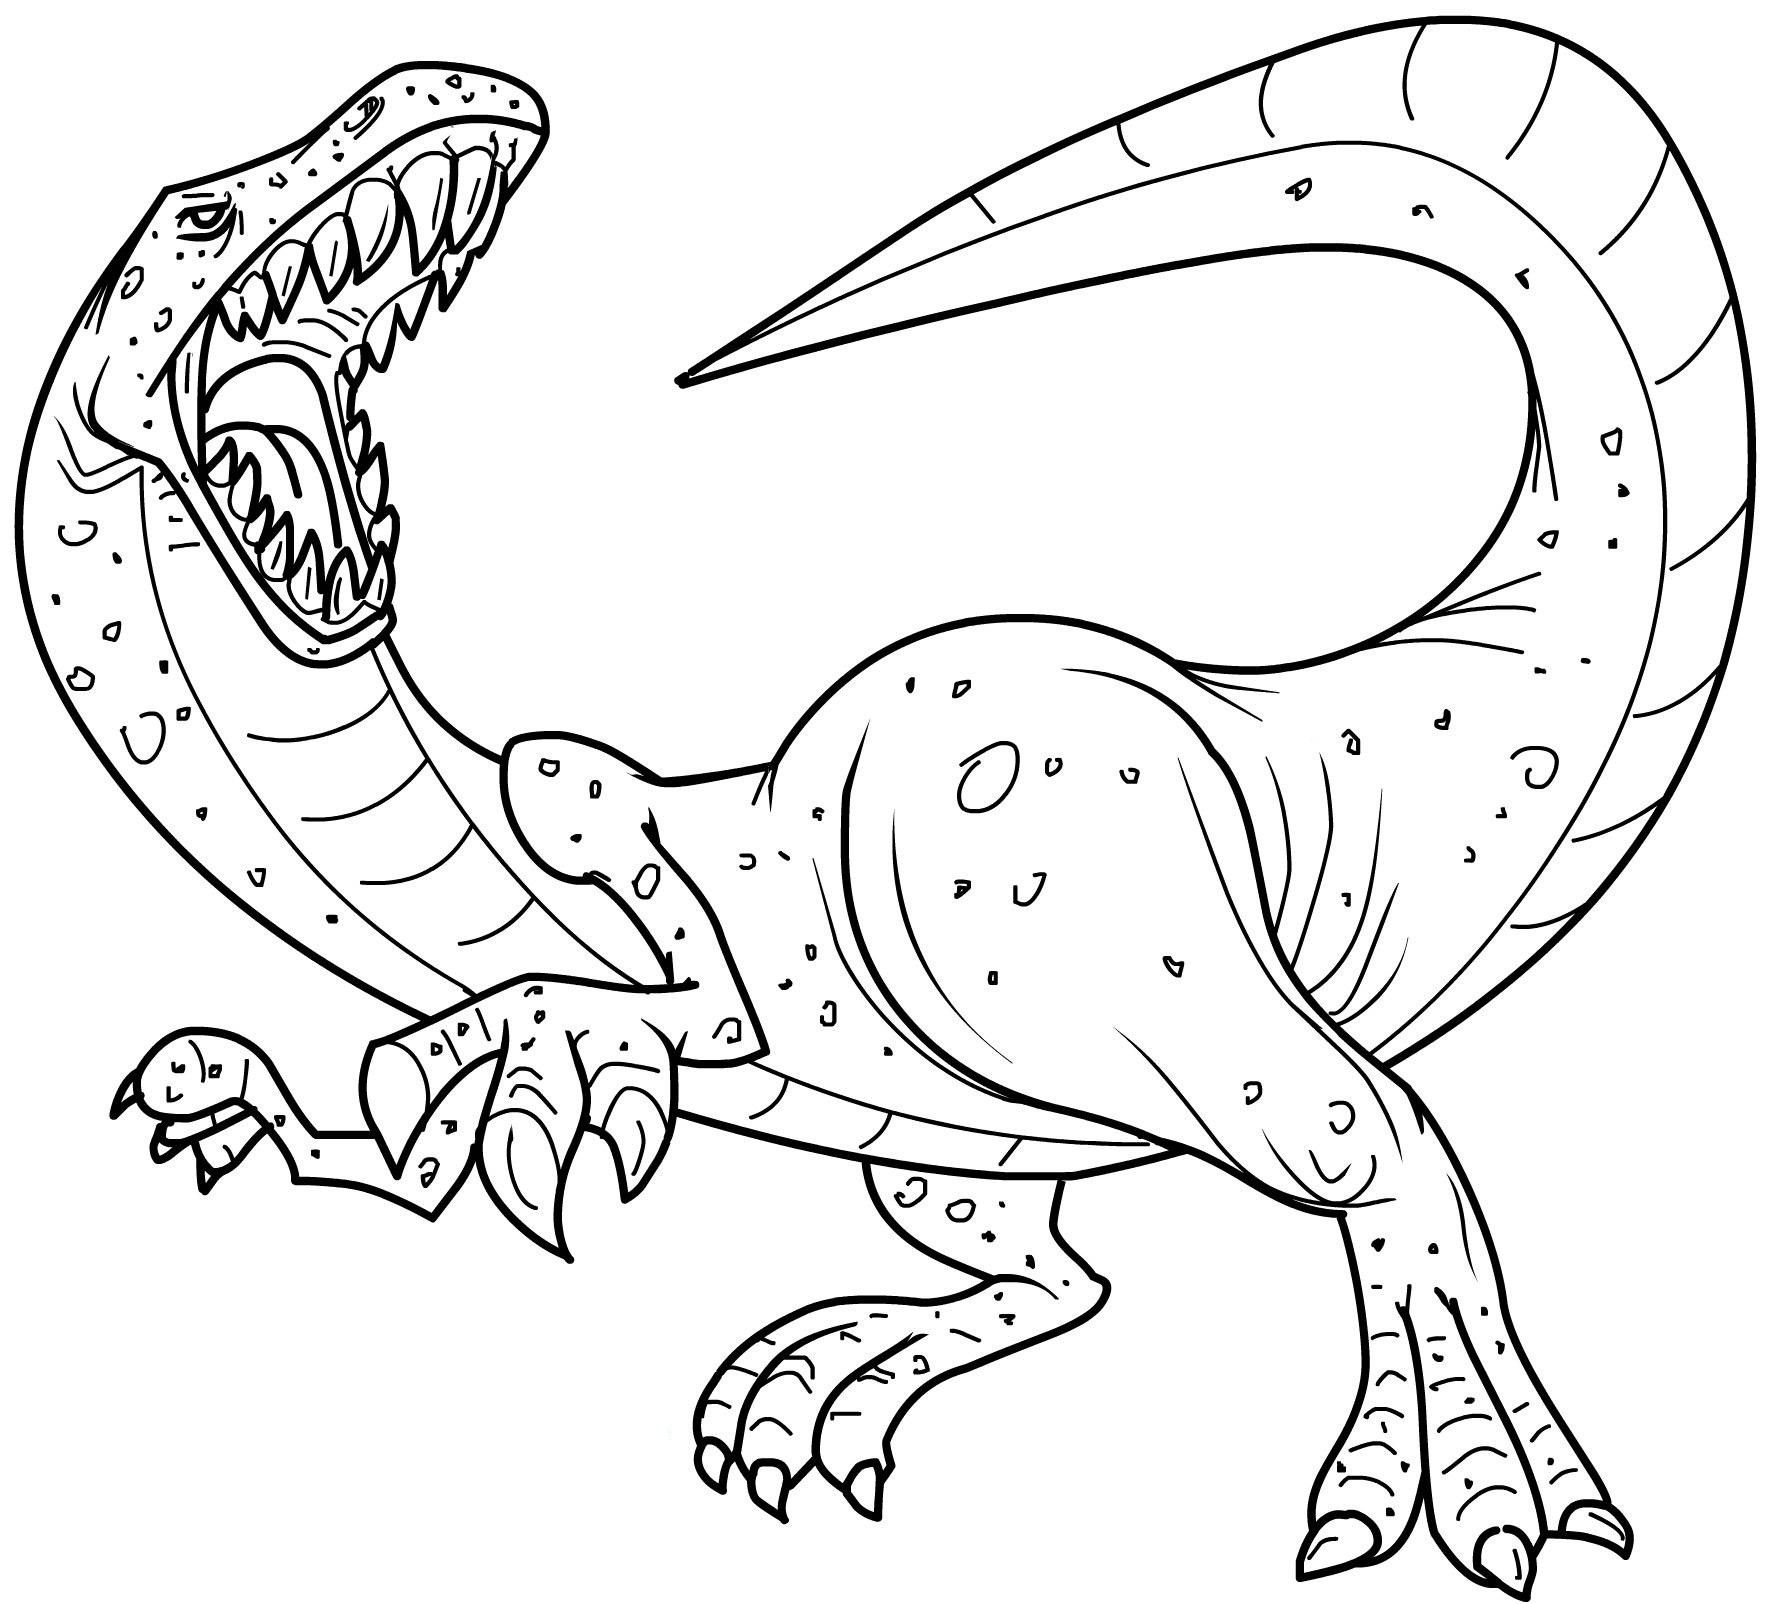 Free Dinosaur Coloring Pages With Printable Dinosaur Coloring Pages ...